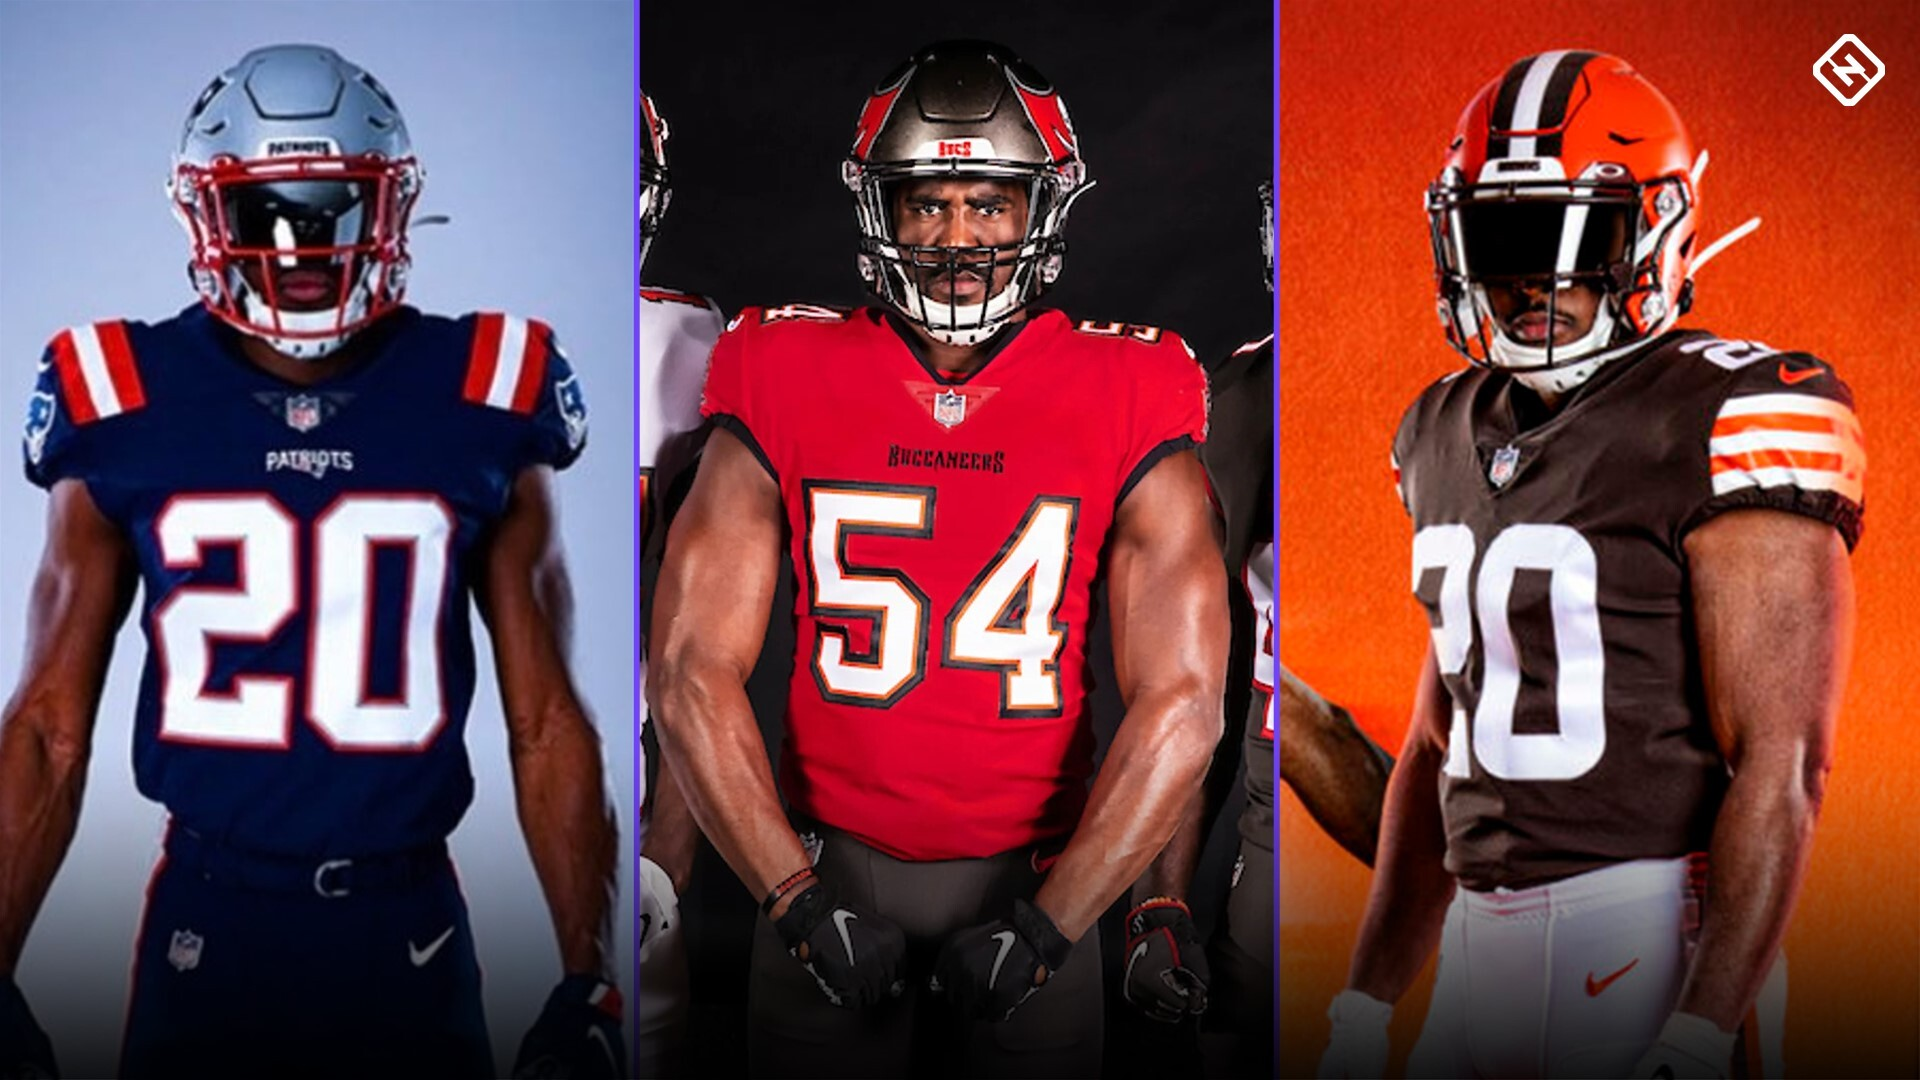 new nfl uniforms 2020 here are the jerseys for patriots buccaneers falcons browns and chargers sporting news new nfl uniforms 2020 here are the